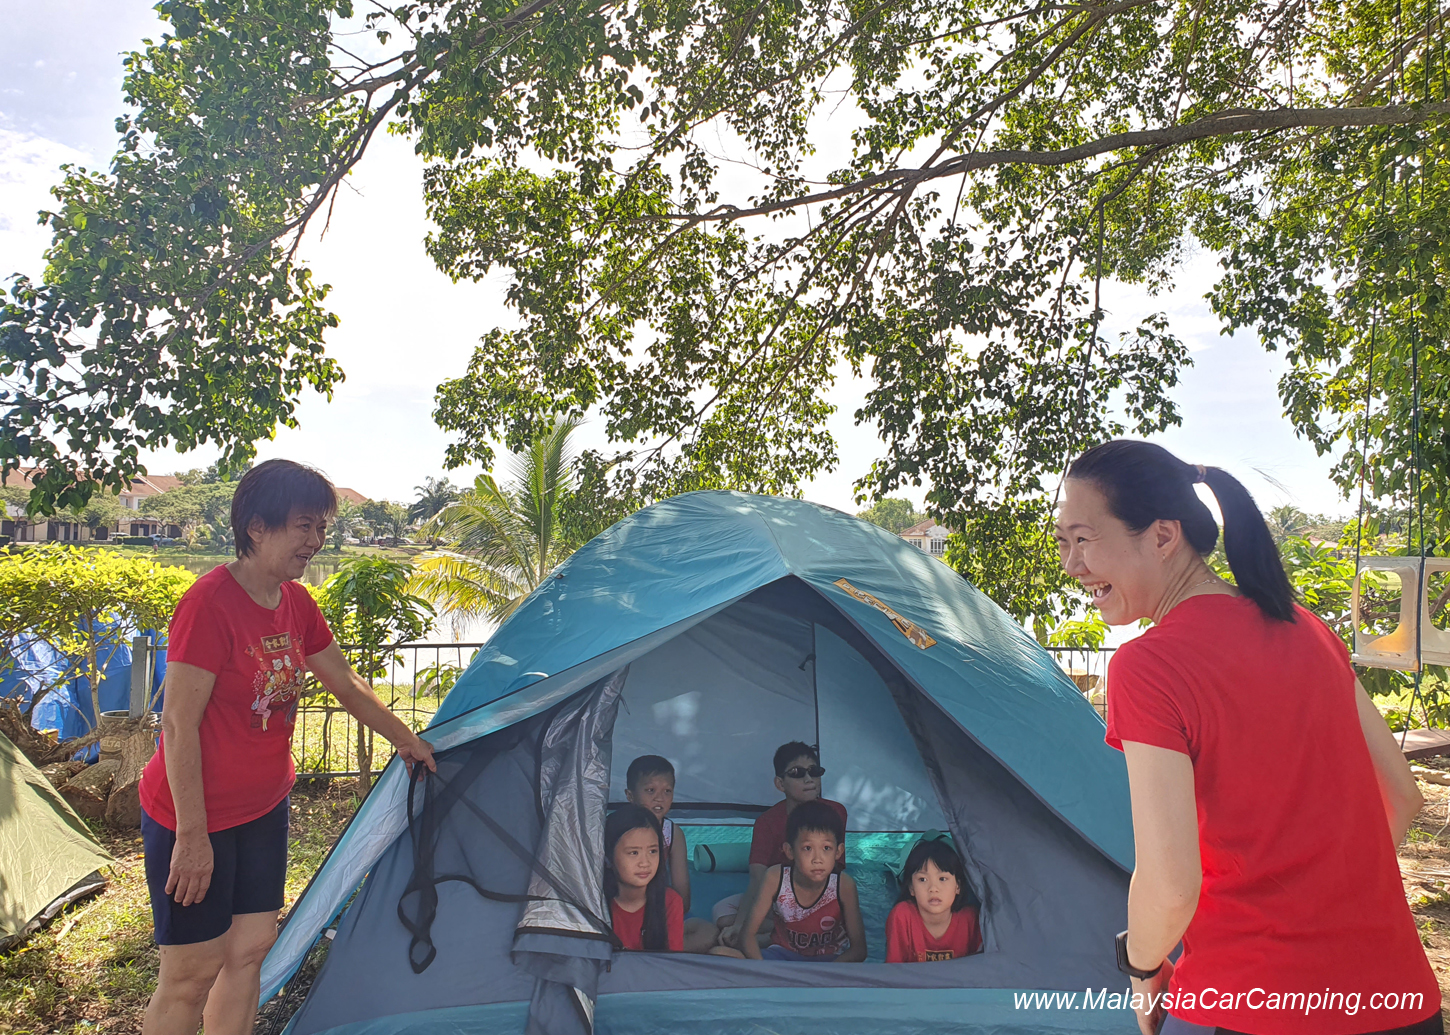 camping_with_dogs_puppy_lakeside_camping_malaysia_car_camping_malaysia_campsite-18